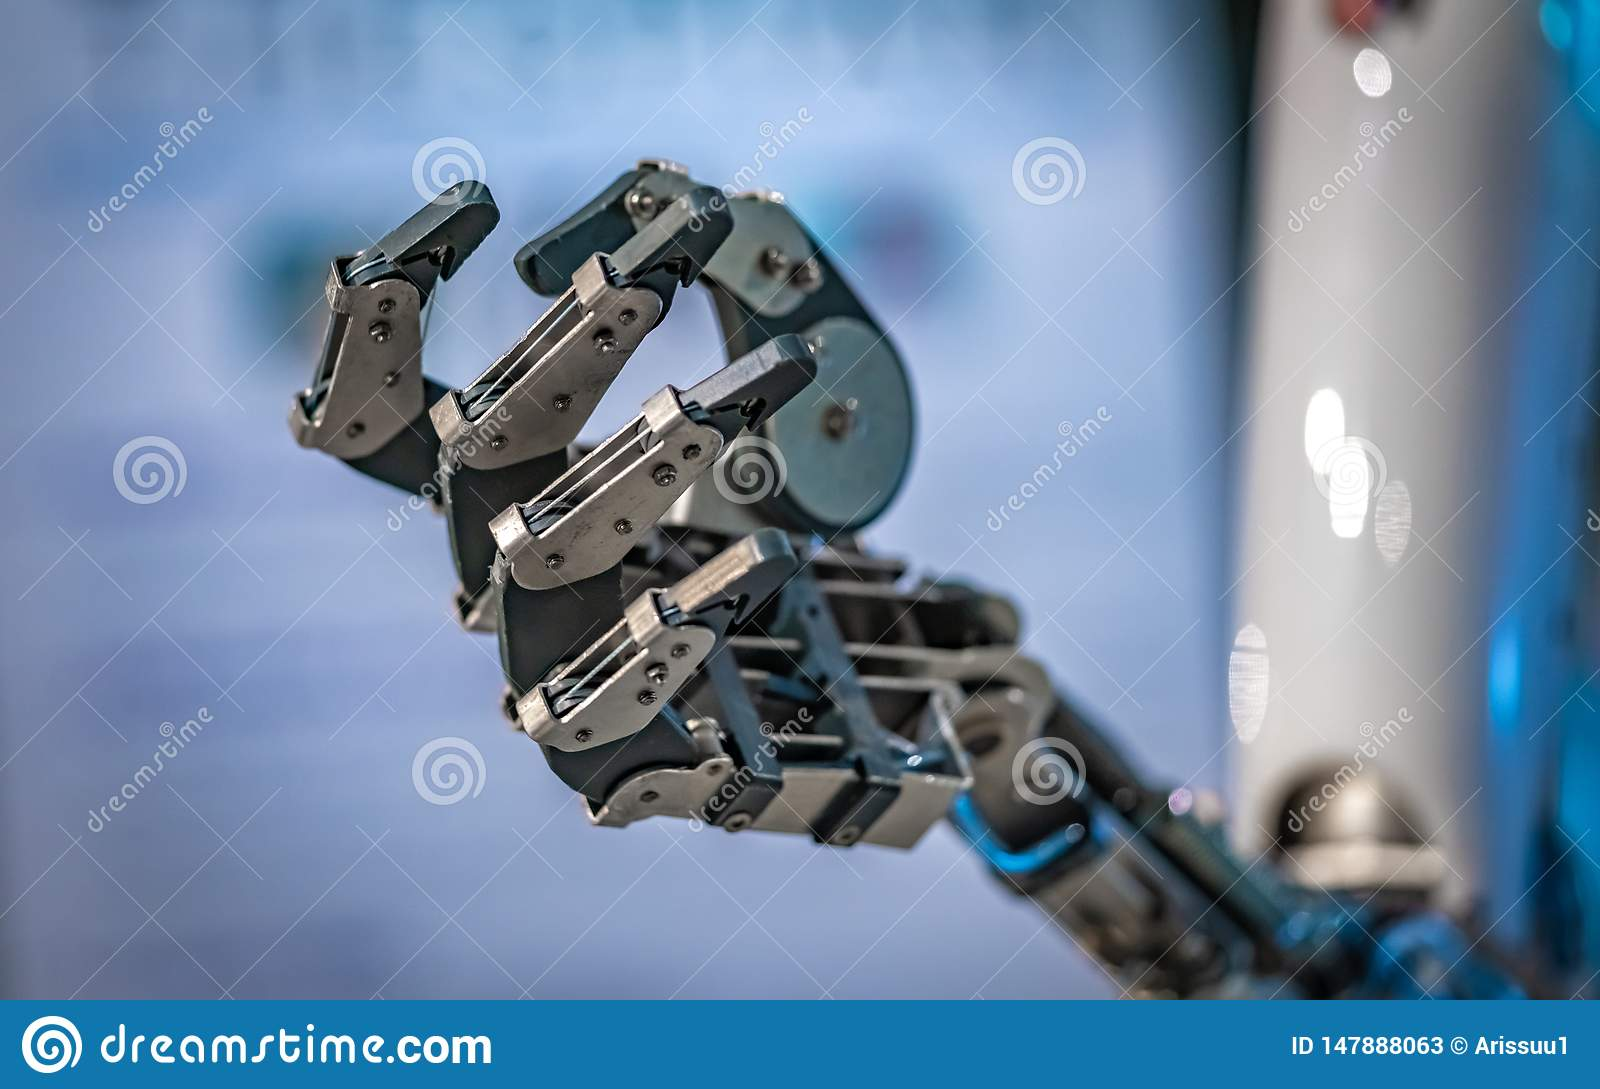 Industrial Robot With Mechanical Flexible Joint